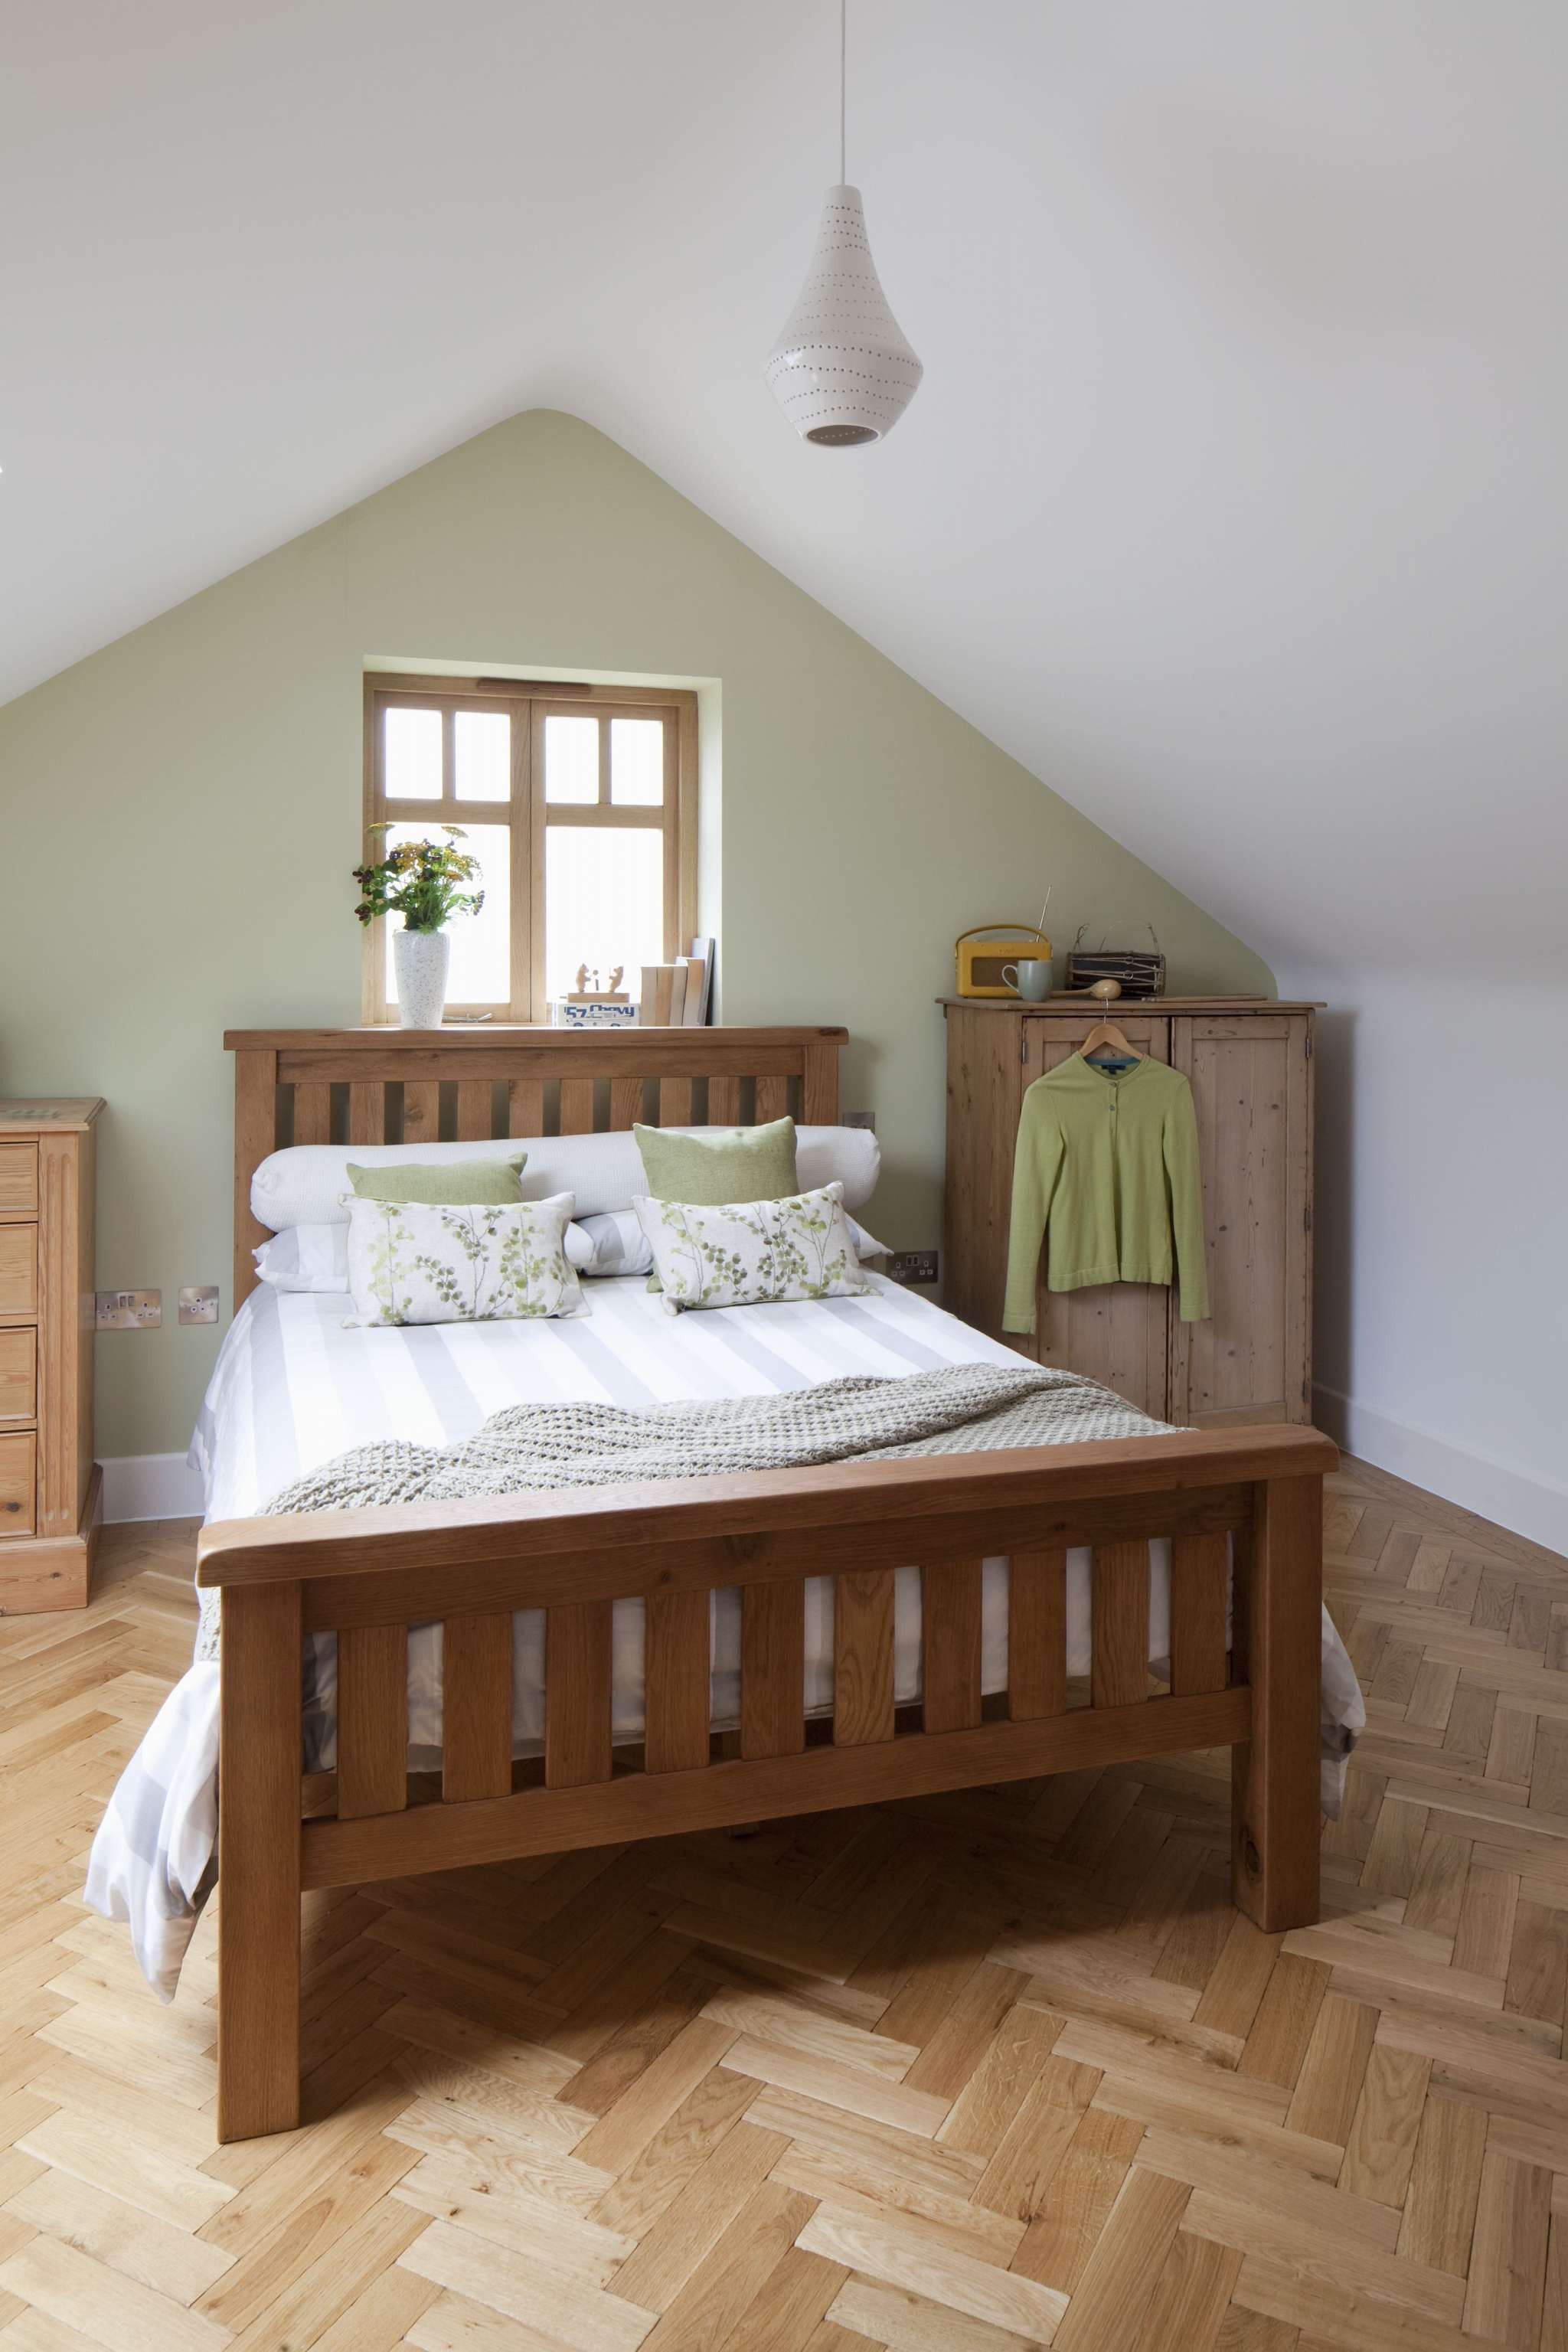 30 Lovely Wooden Crate Bed Frame which Popular This Year